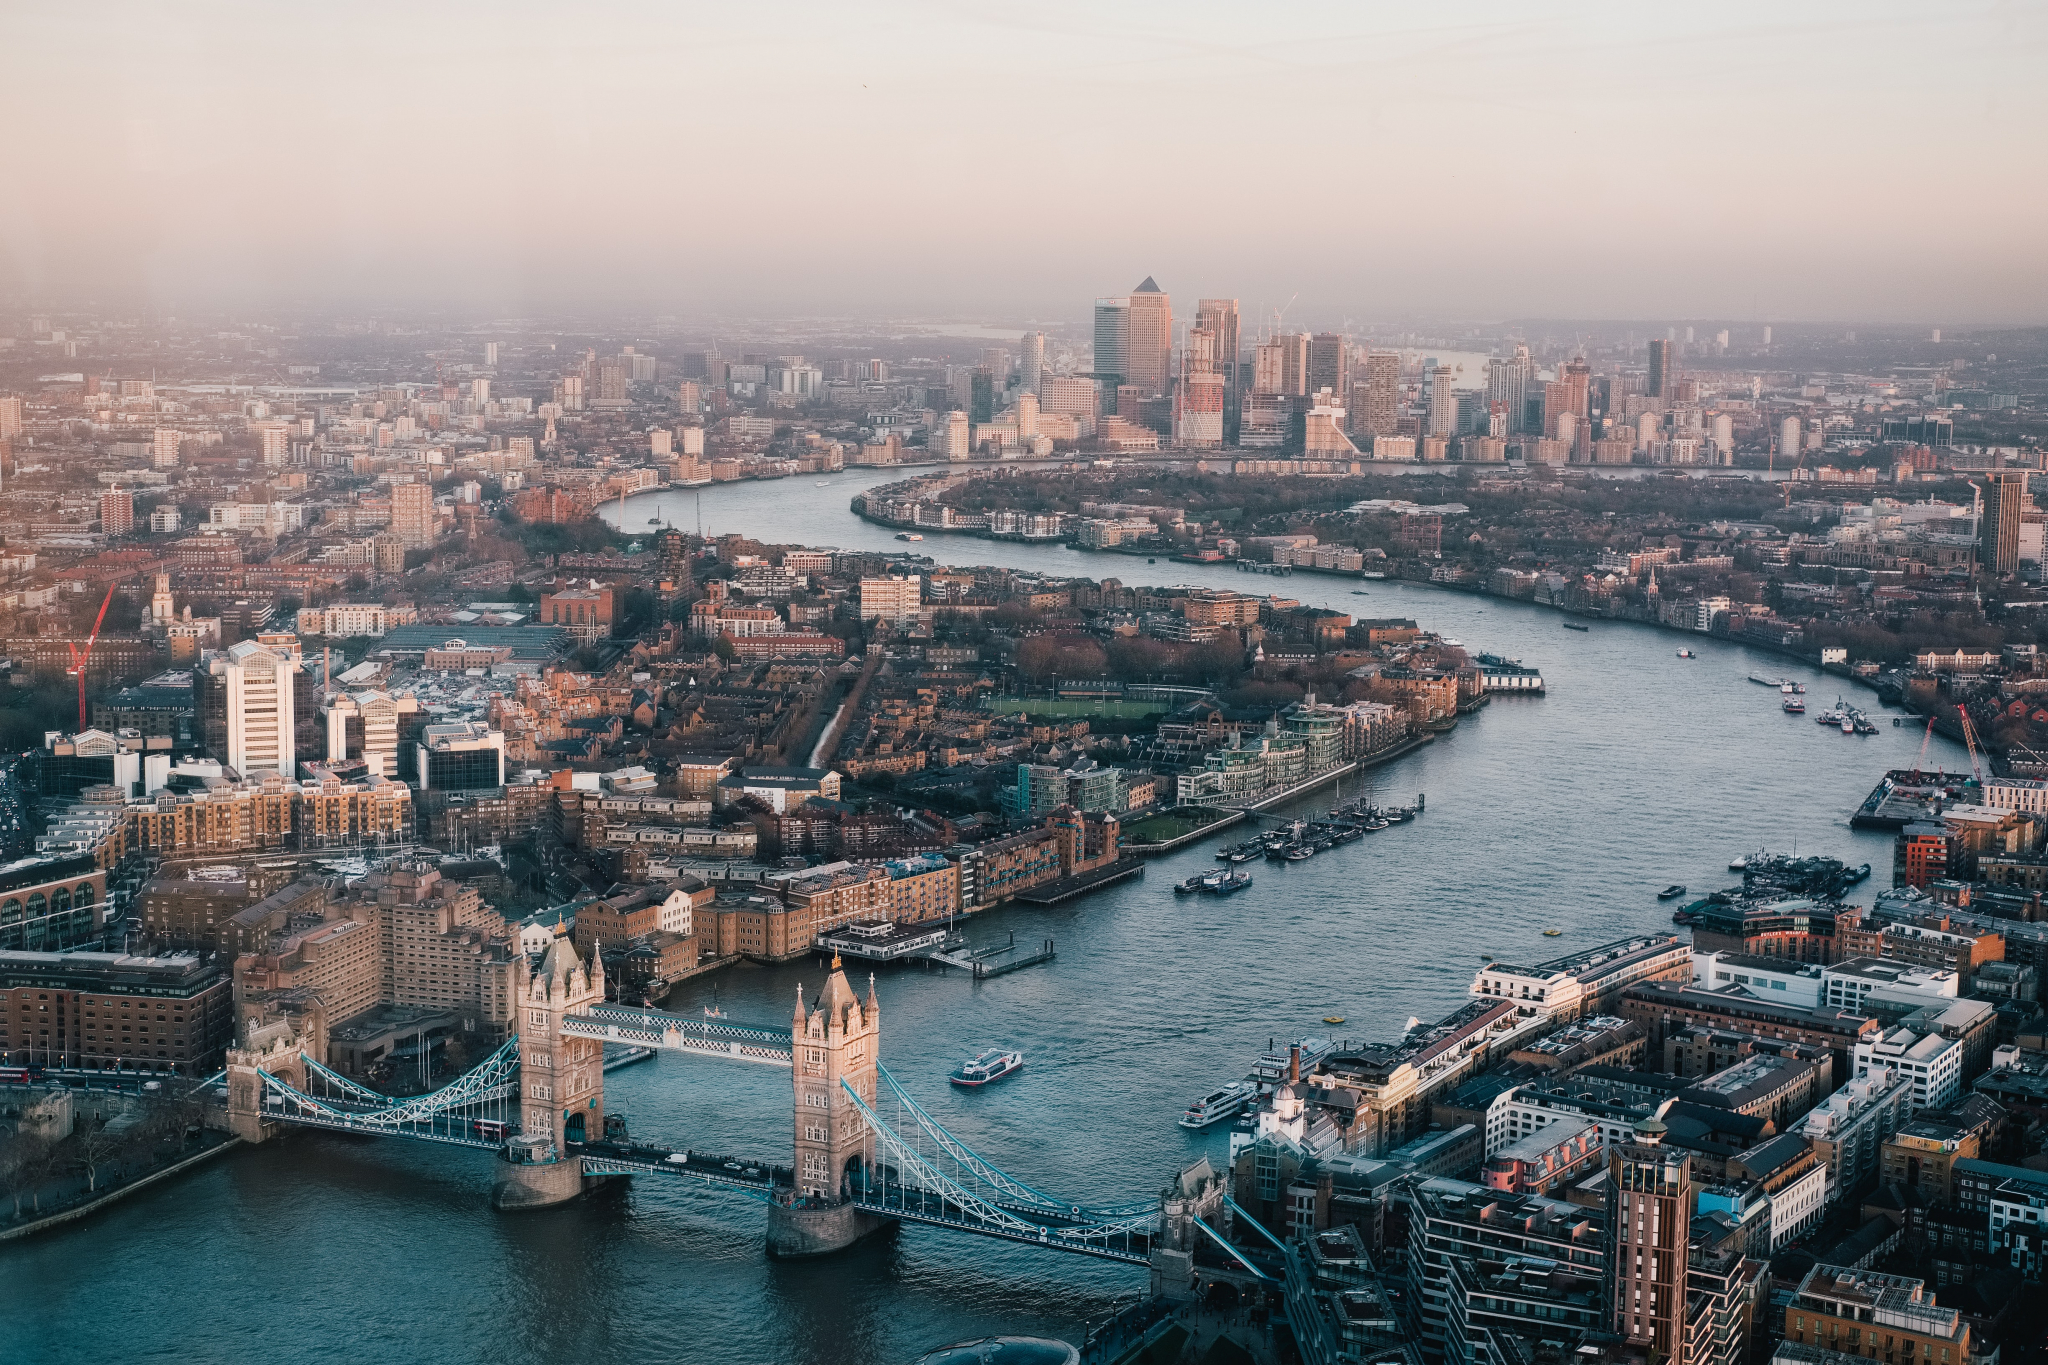 Central London from above